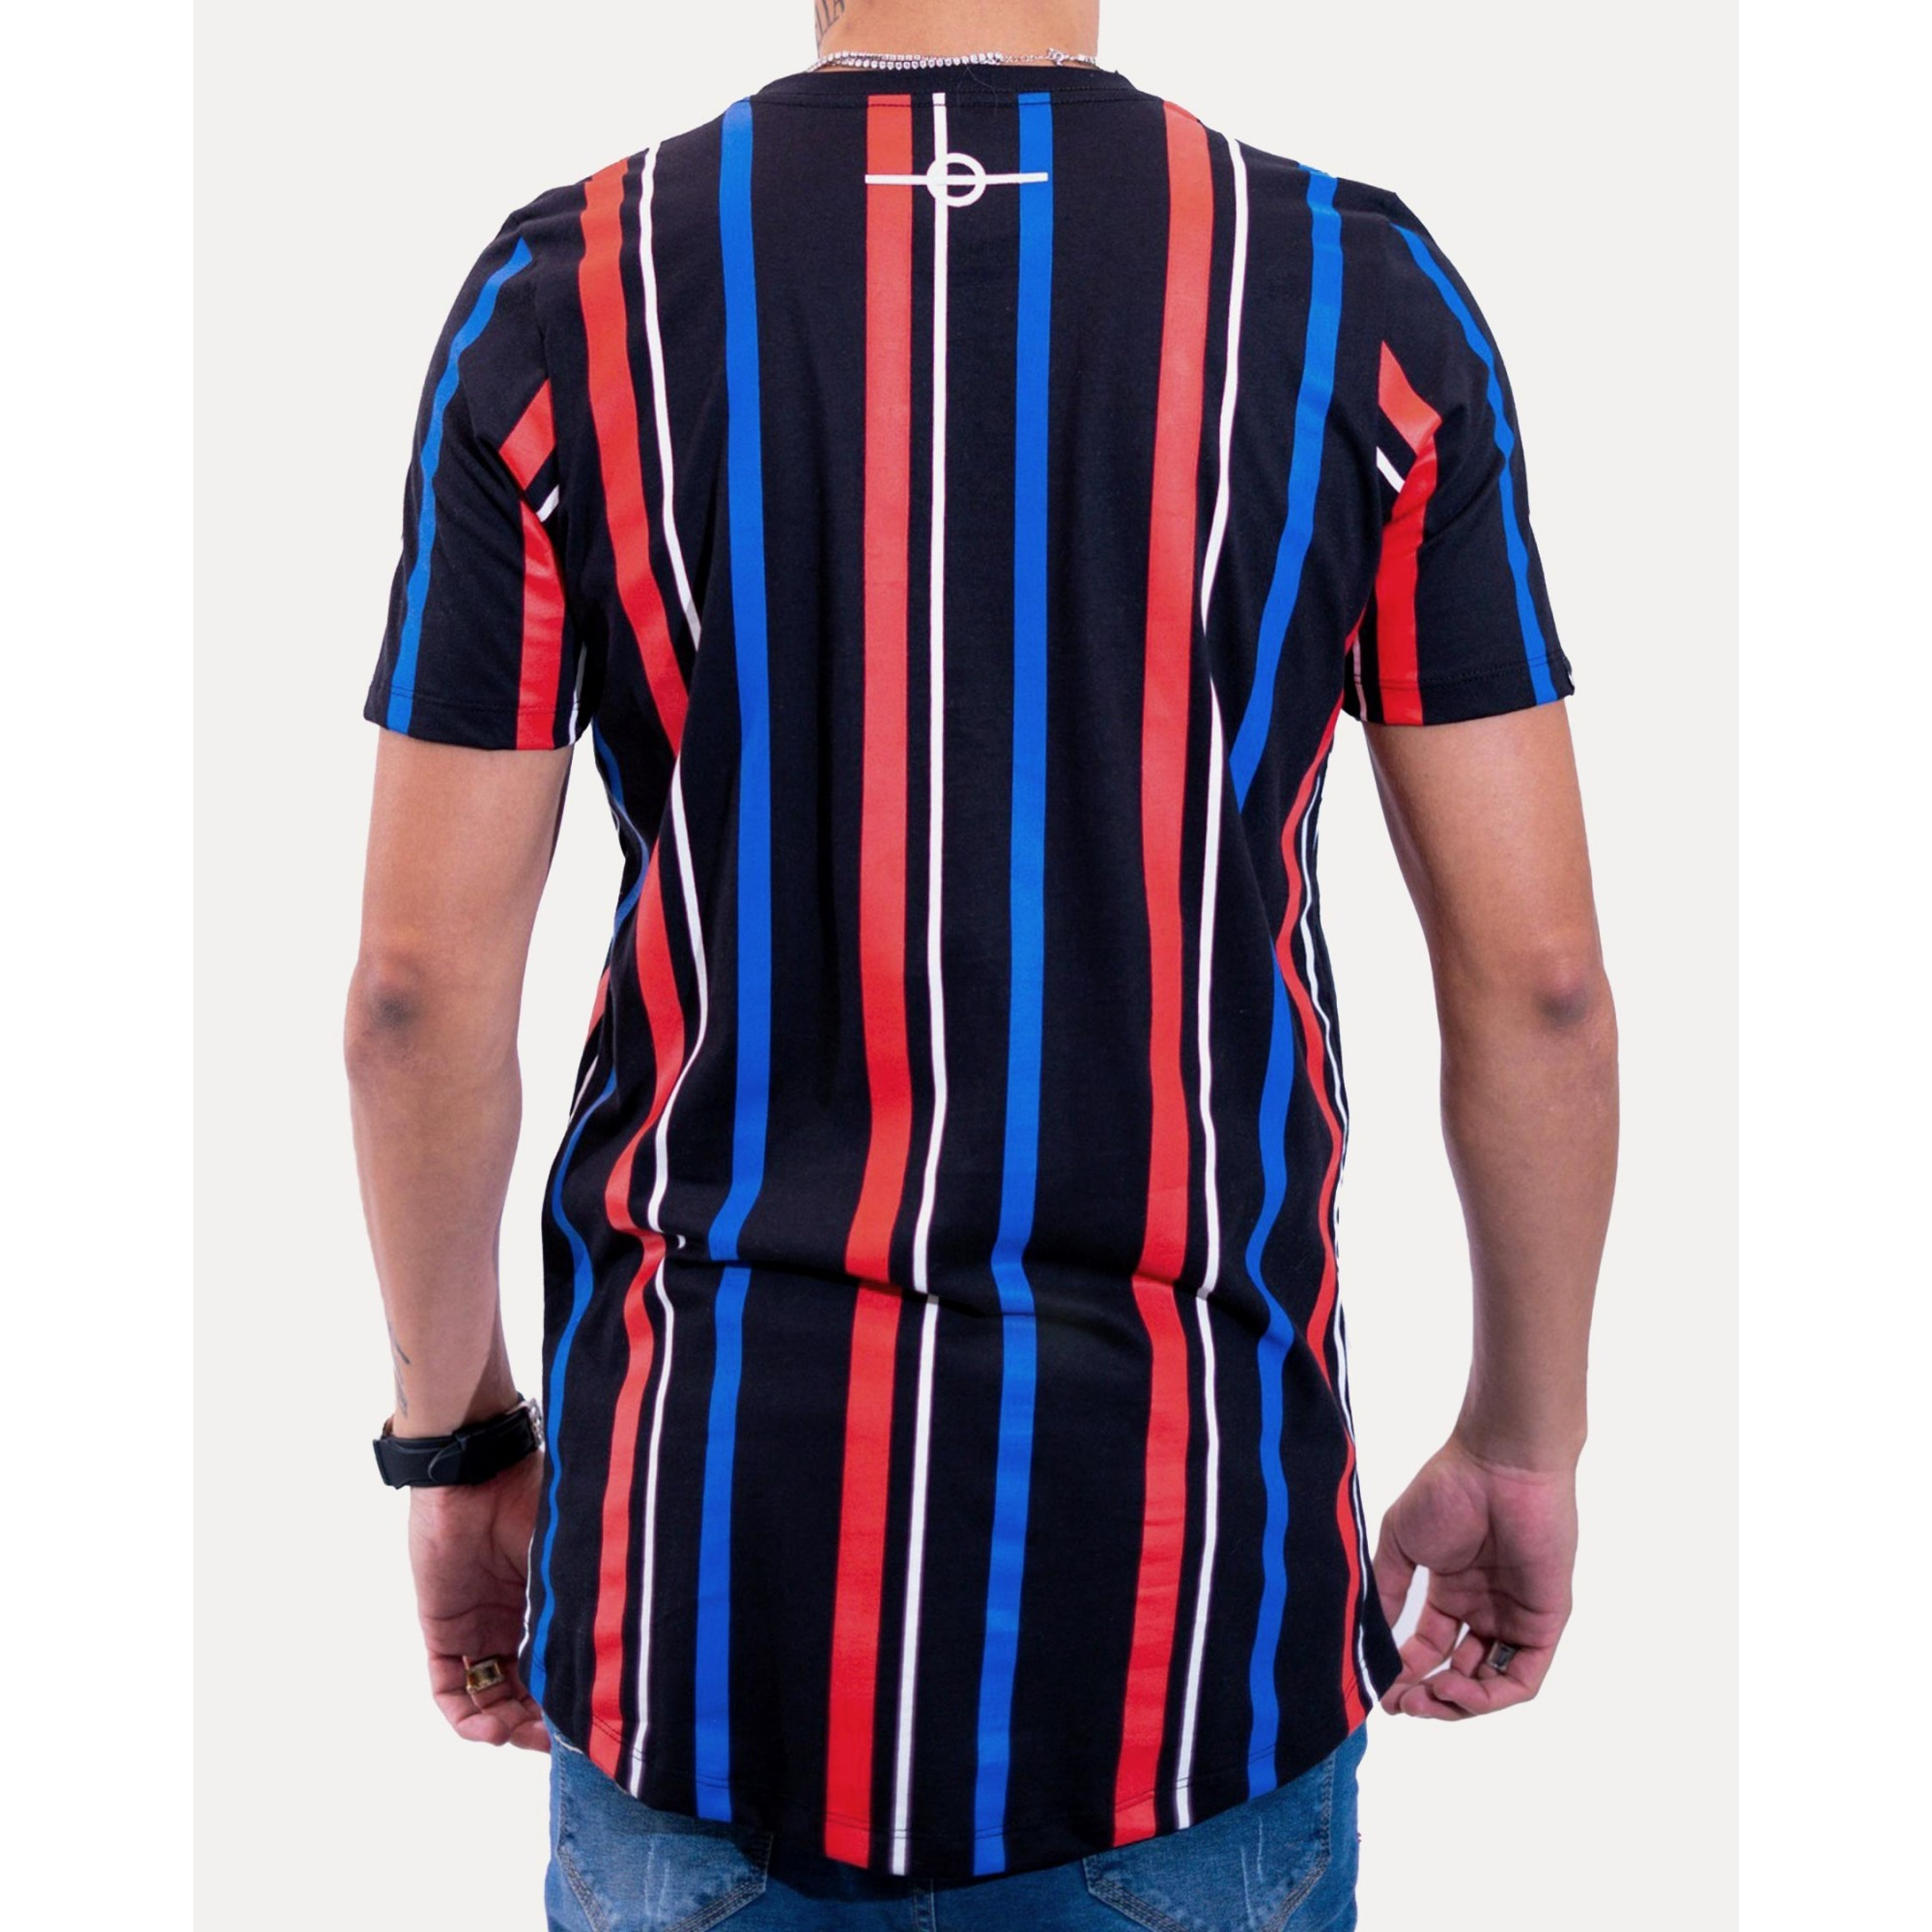 Camiseta Buh Stripes HQ Black